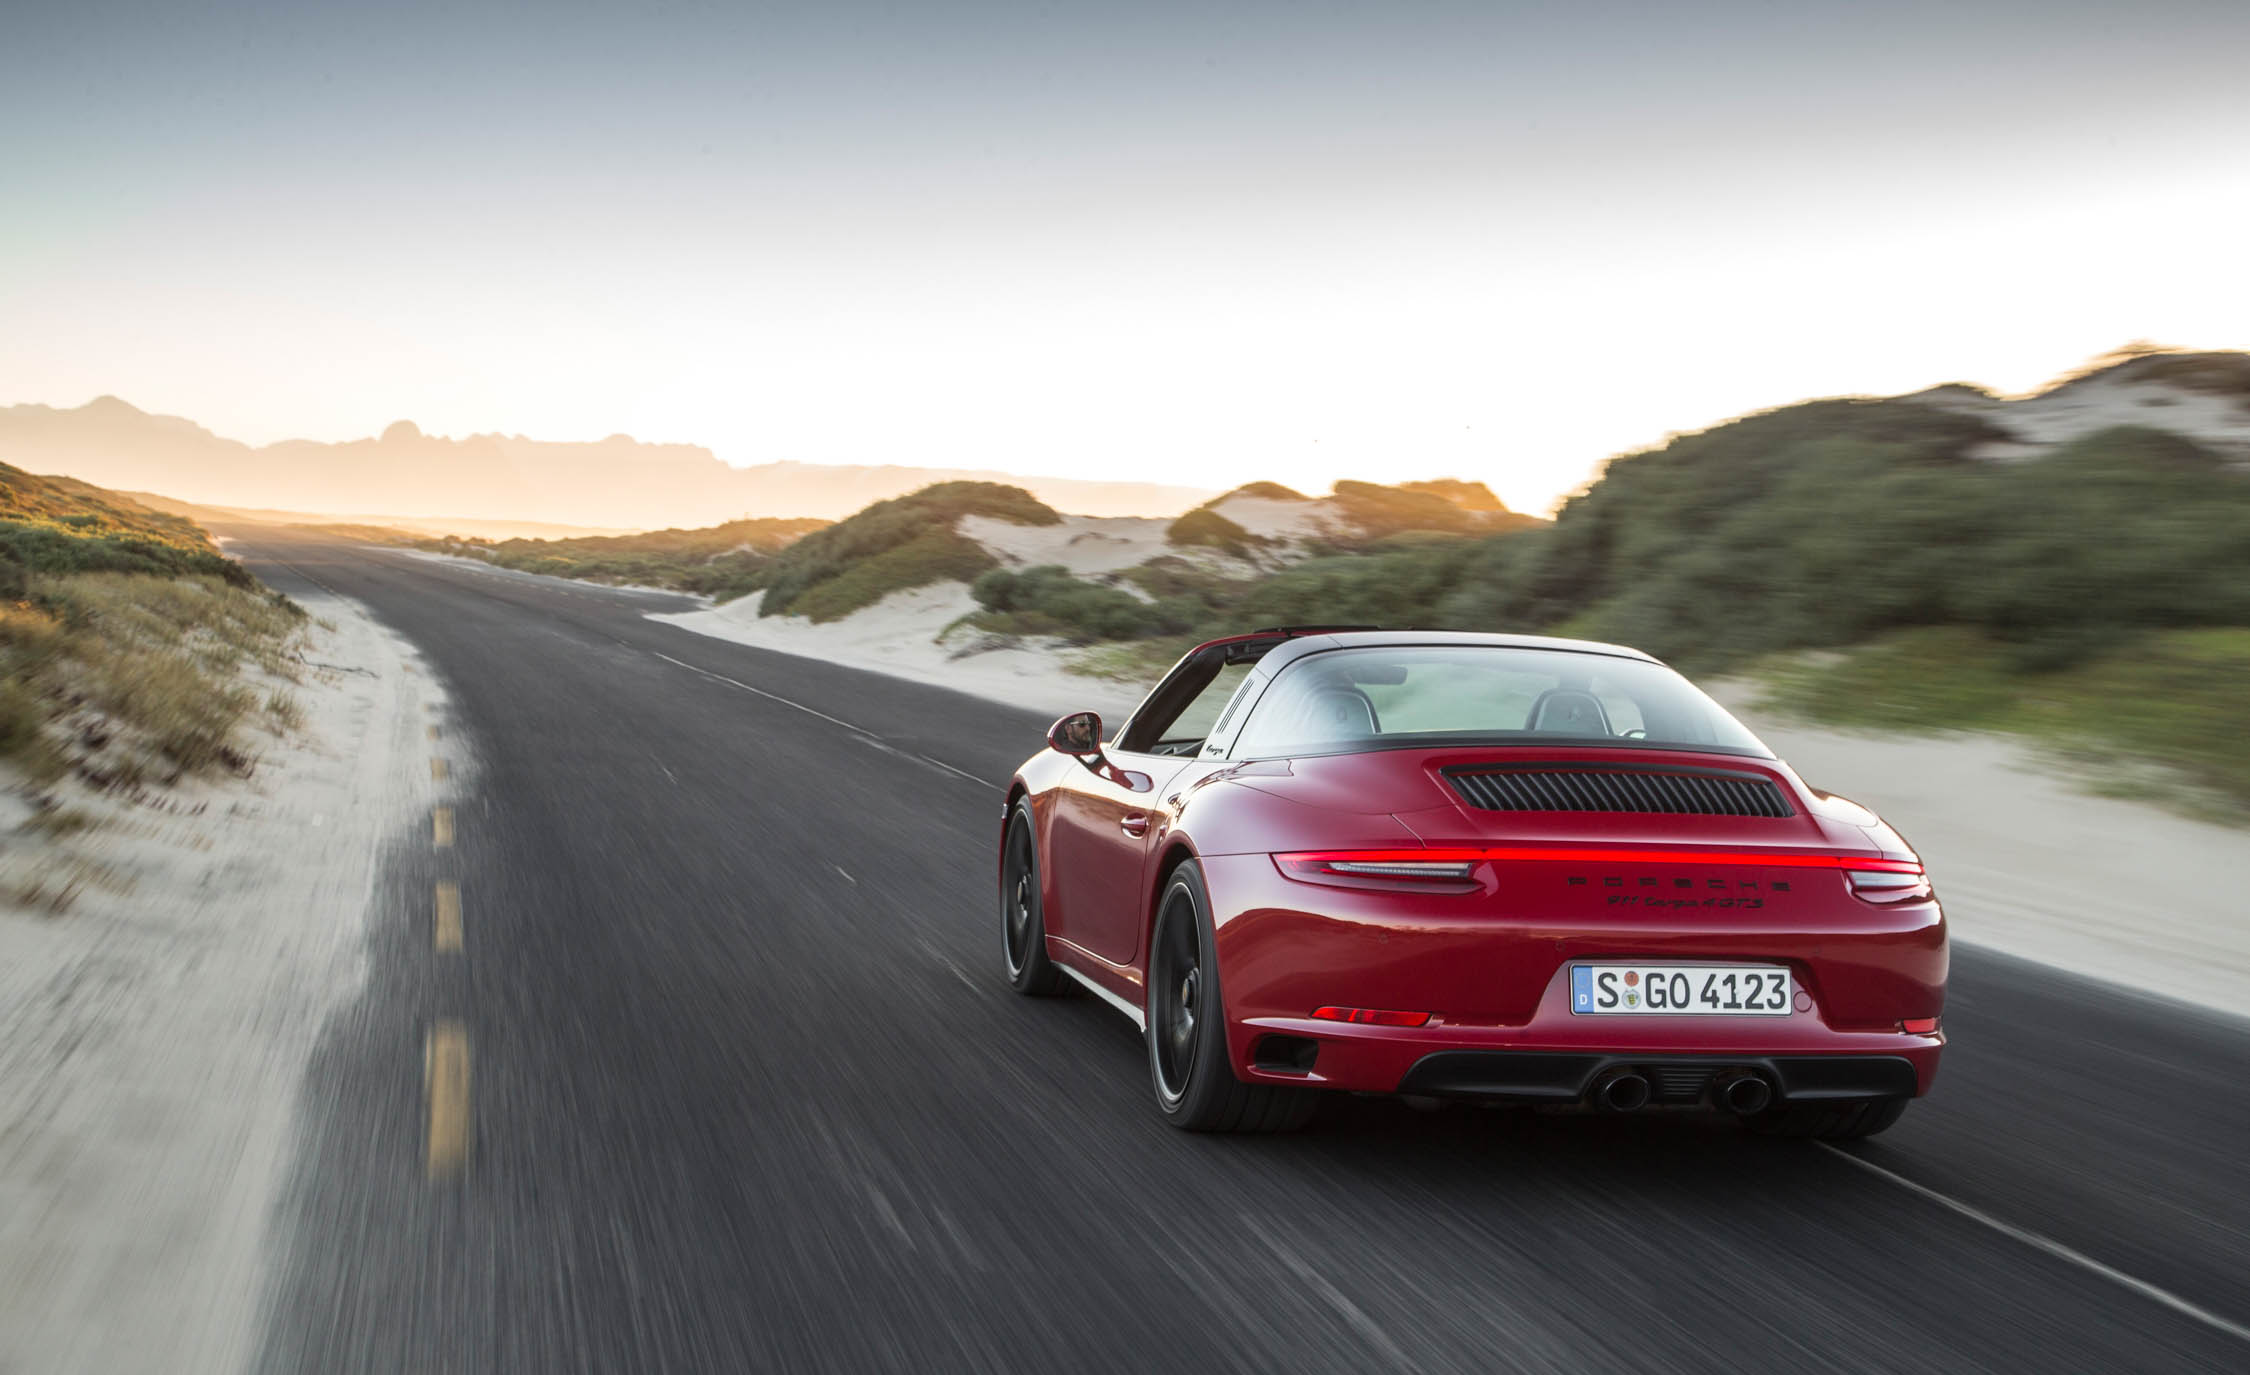 2017 Porsche 911 Targa 4 GTS Red Test Drive Rear Corner (Photo 88 of 97)